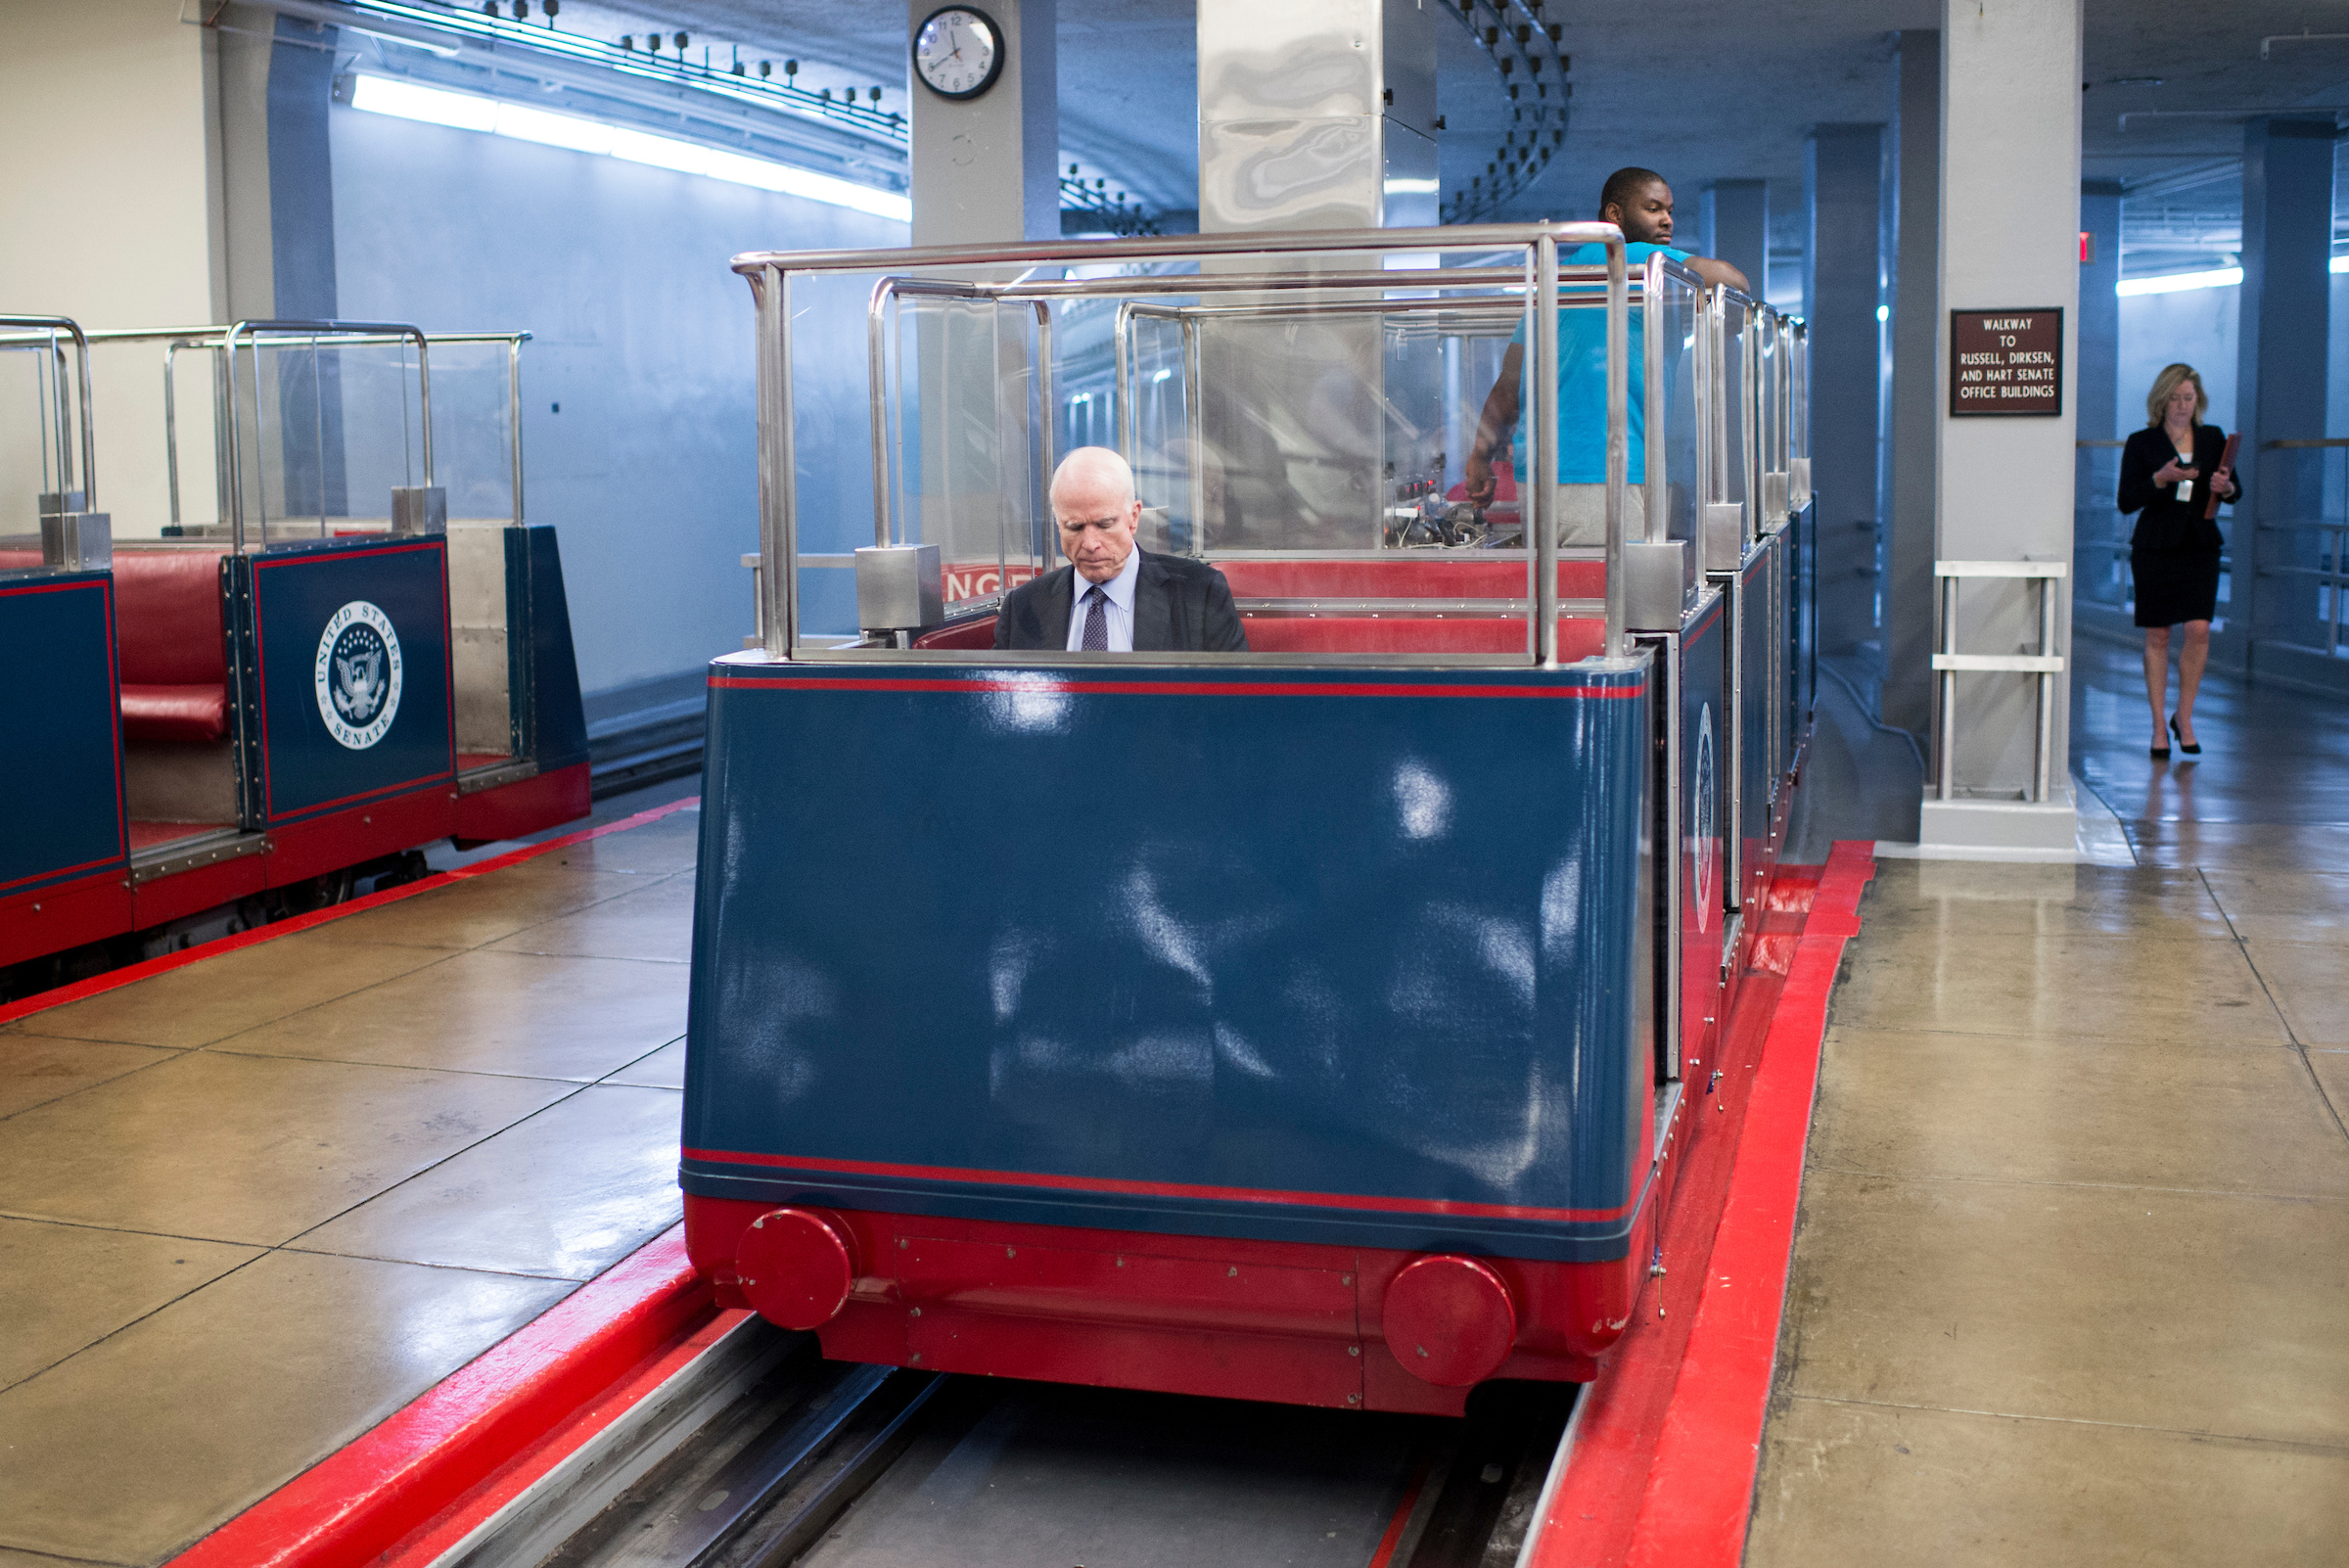 Arizona Sen. John McCain arrives in the Capitol on the Senate subway for a vote on Thursday, Sept. 15, 2016. (Bill Clark/CQ Roll Call)